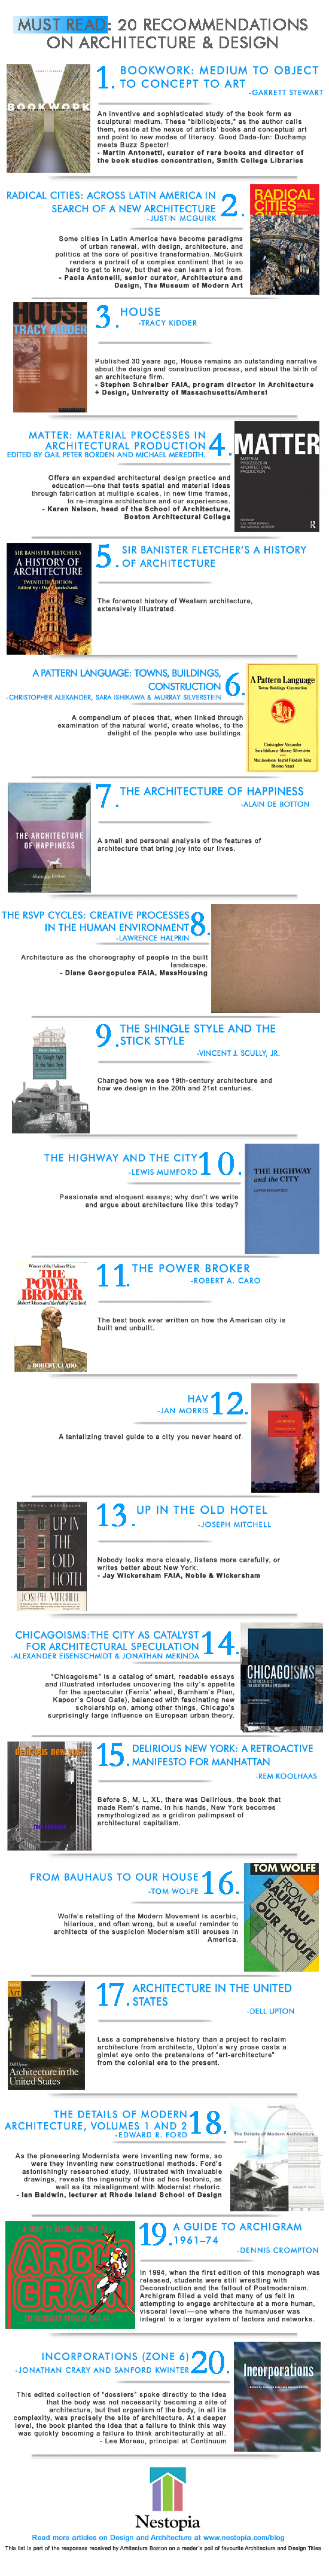 20 Recommended Reads on Design and Architecture Infographic